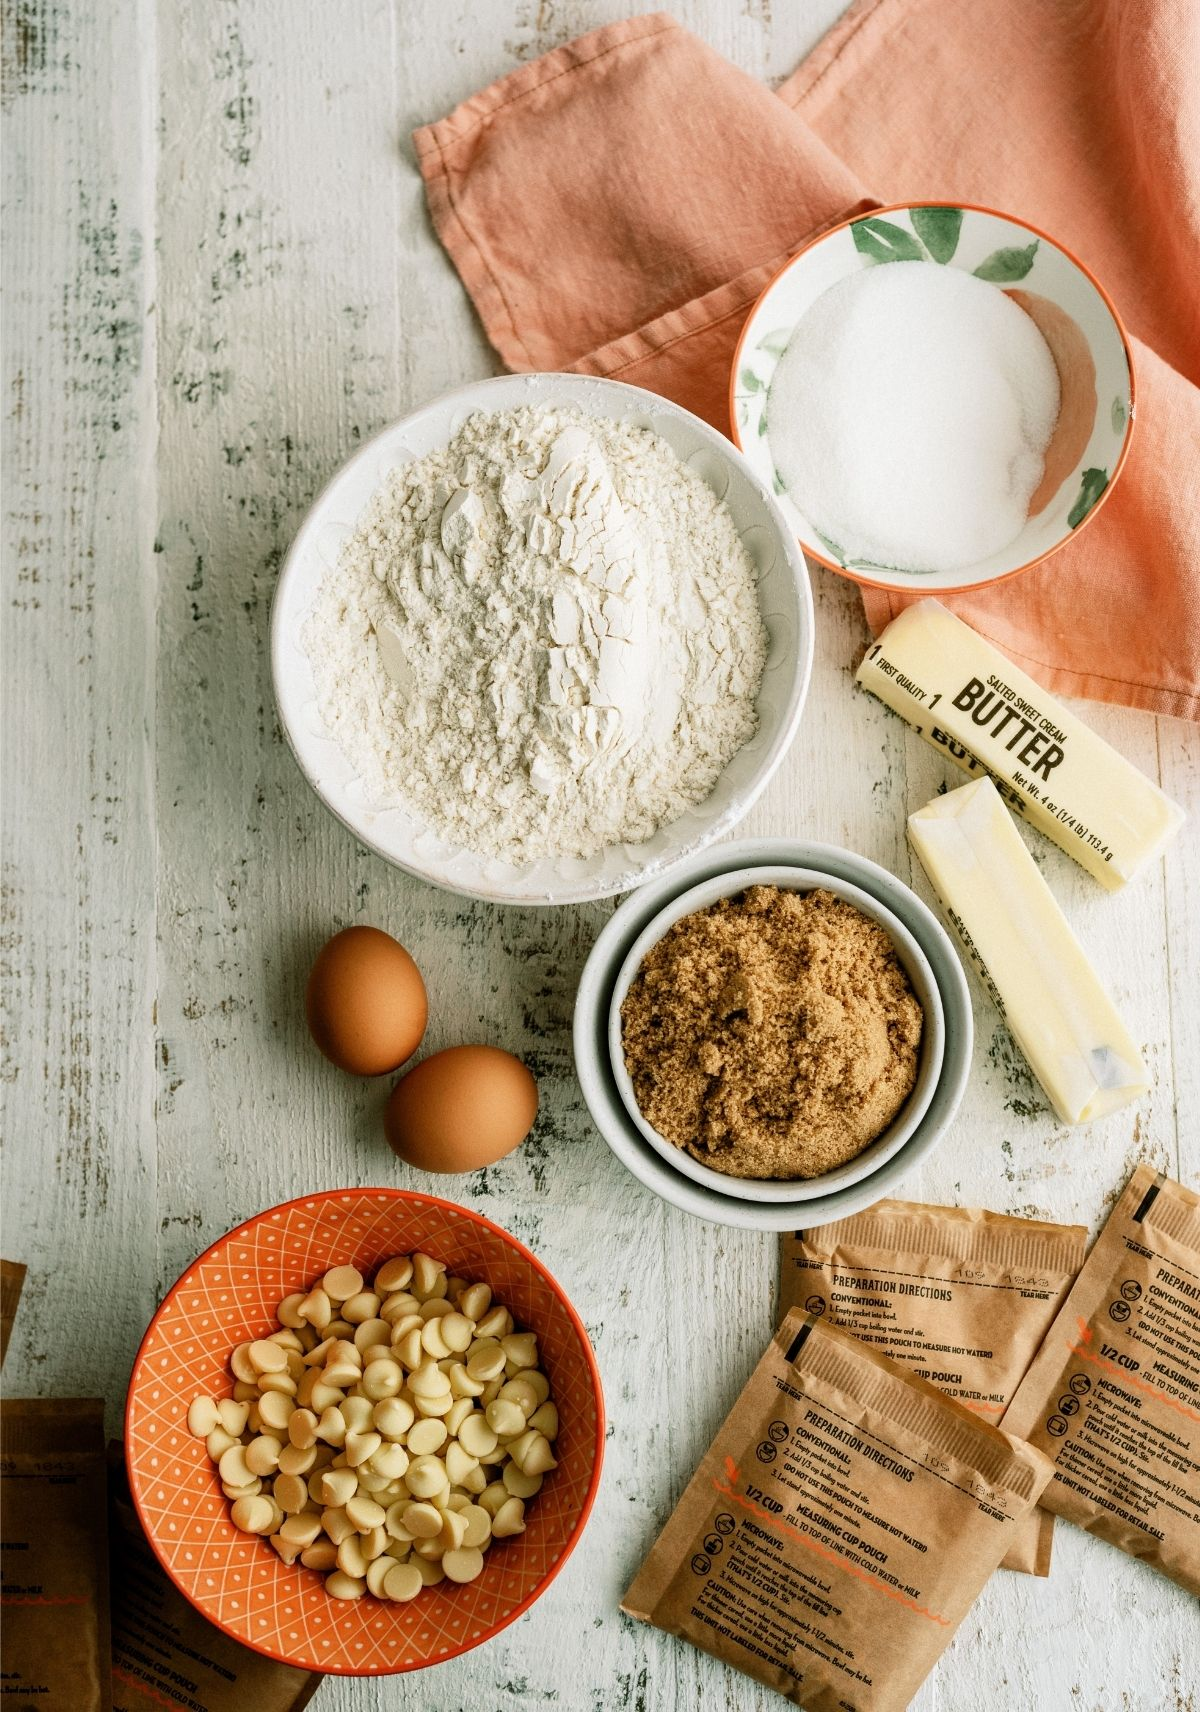 Ingredients for Peaches and Cream Oatmeal Cookies